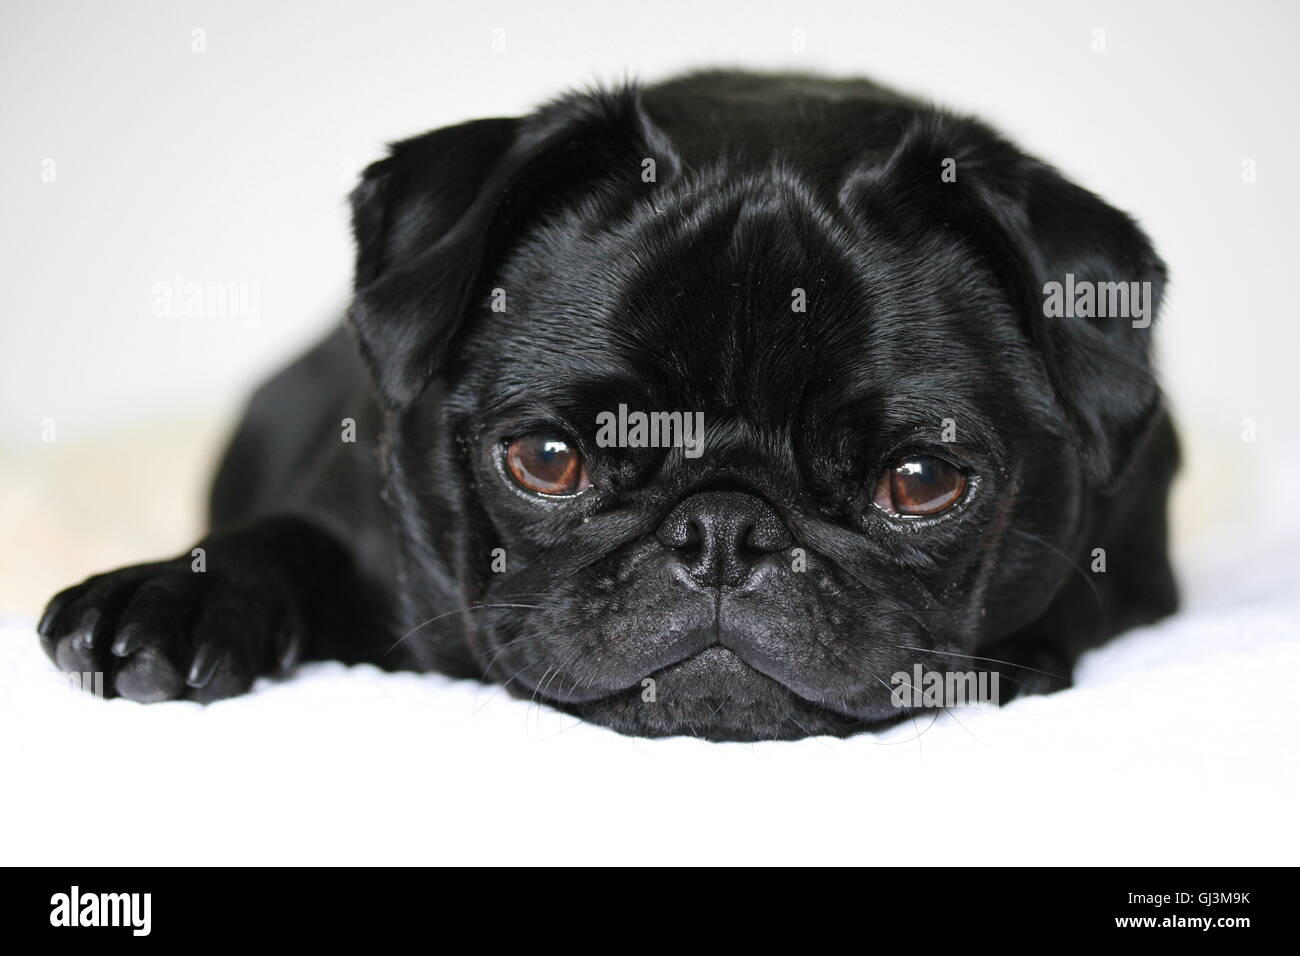 cute black male 2 year old pug dog. relaxed and sleepy - Stock Image